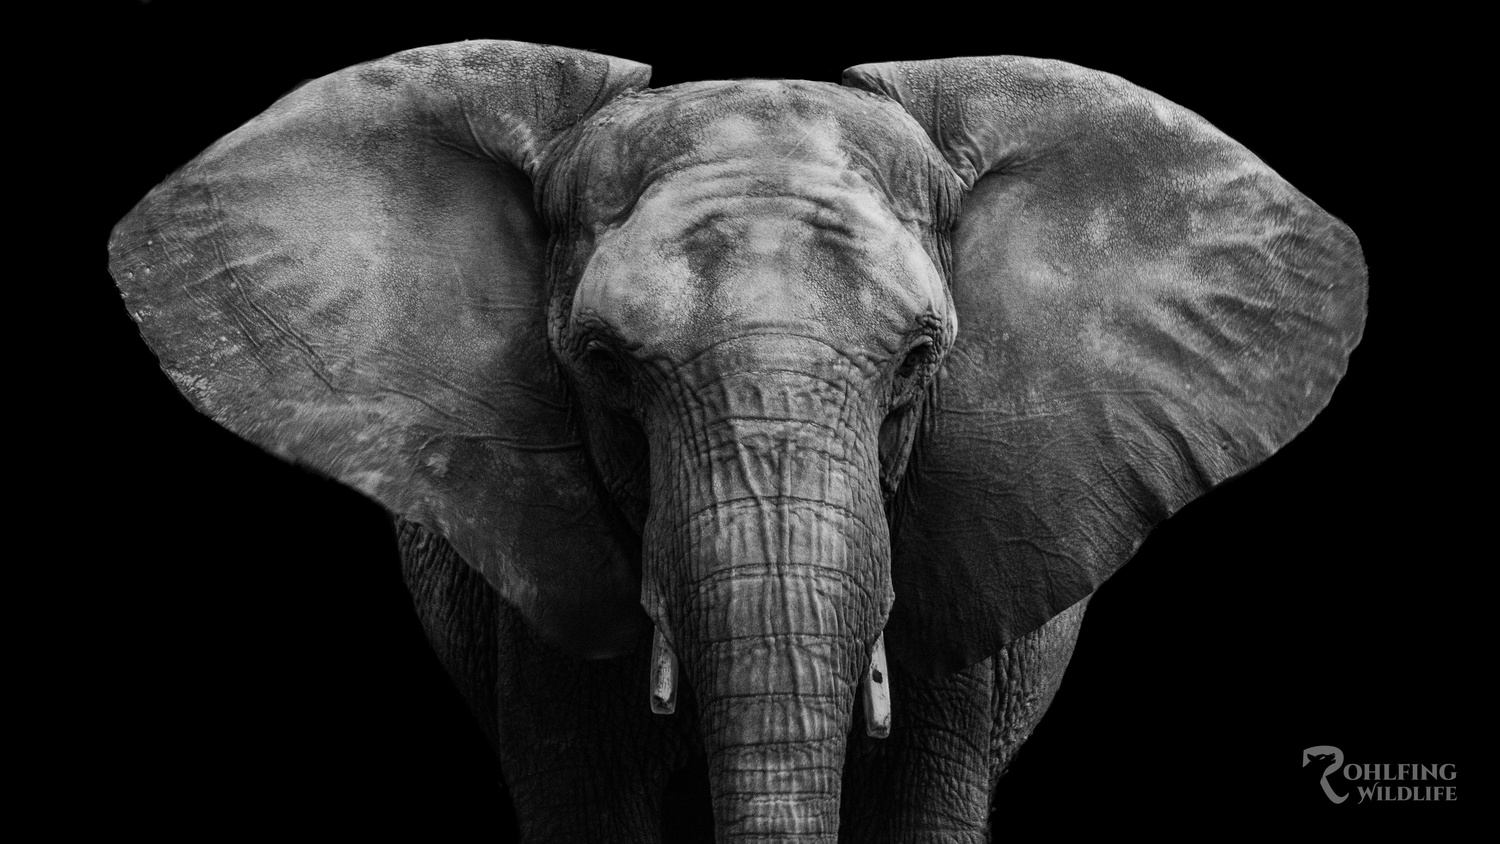 African Elephant - Henry Doorly Zoo by Kyle Rohlfing